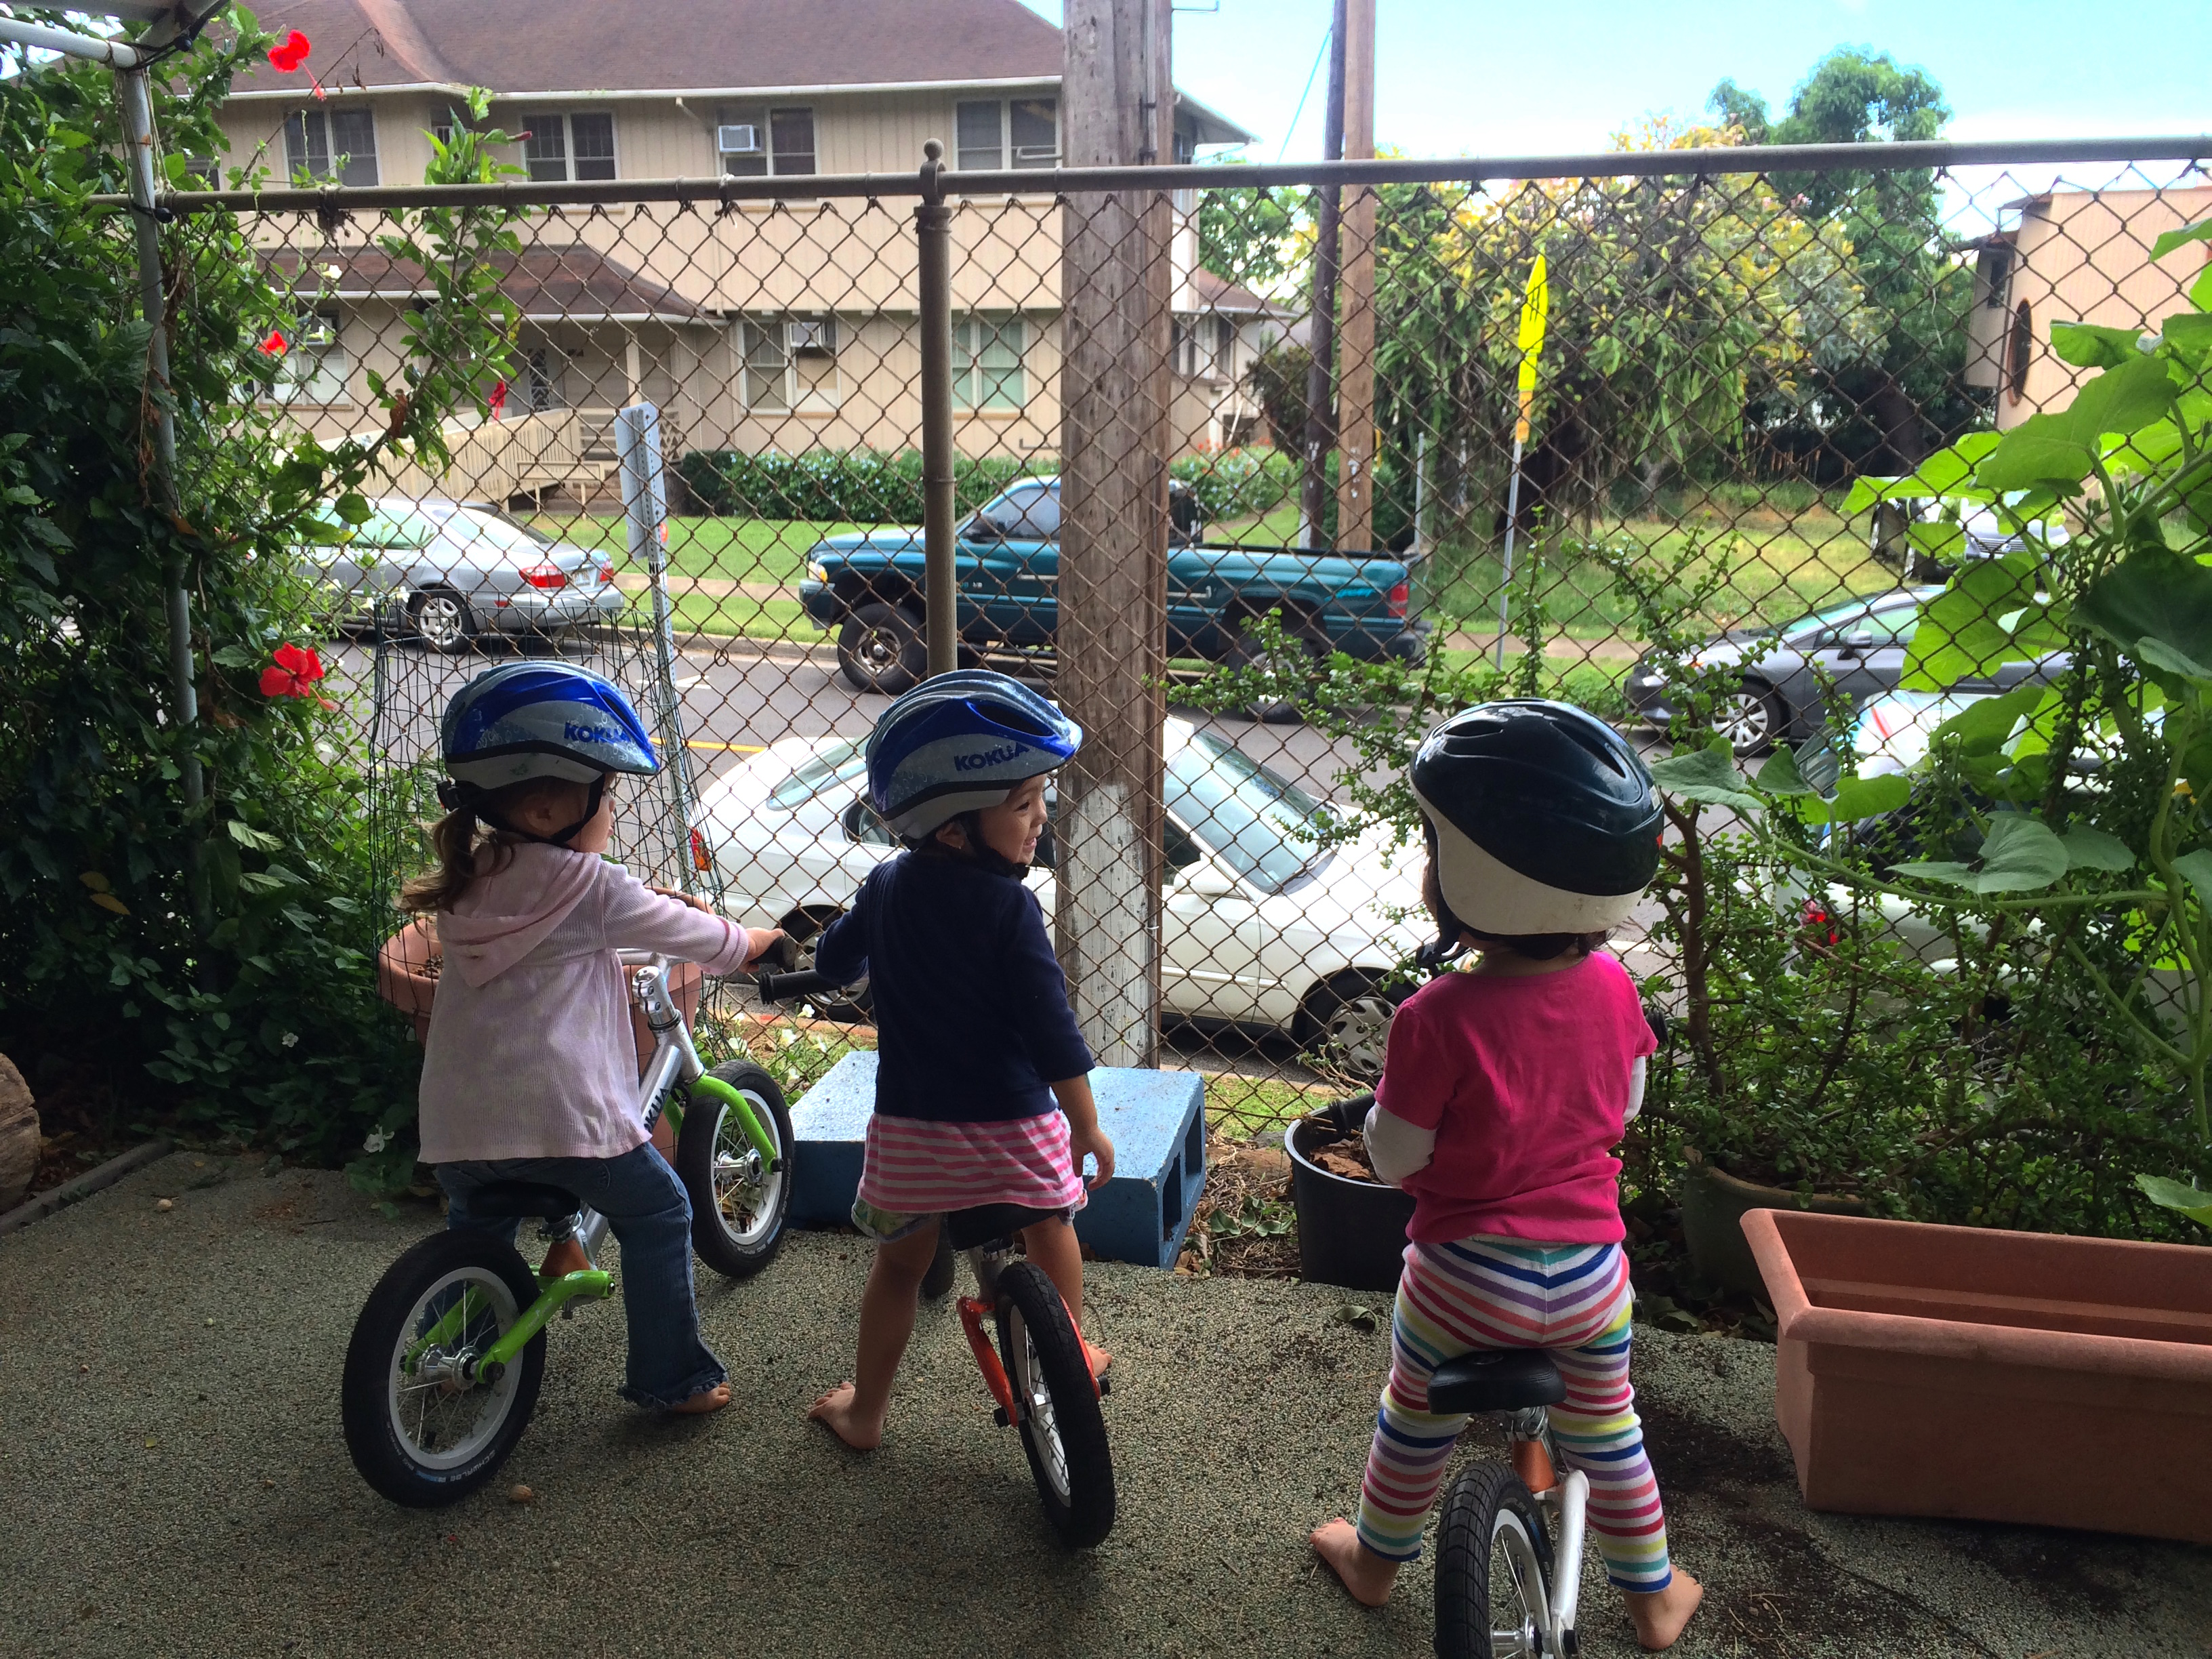 toddlers riding balance bikes